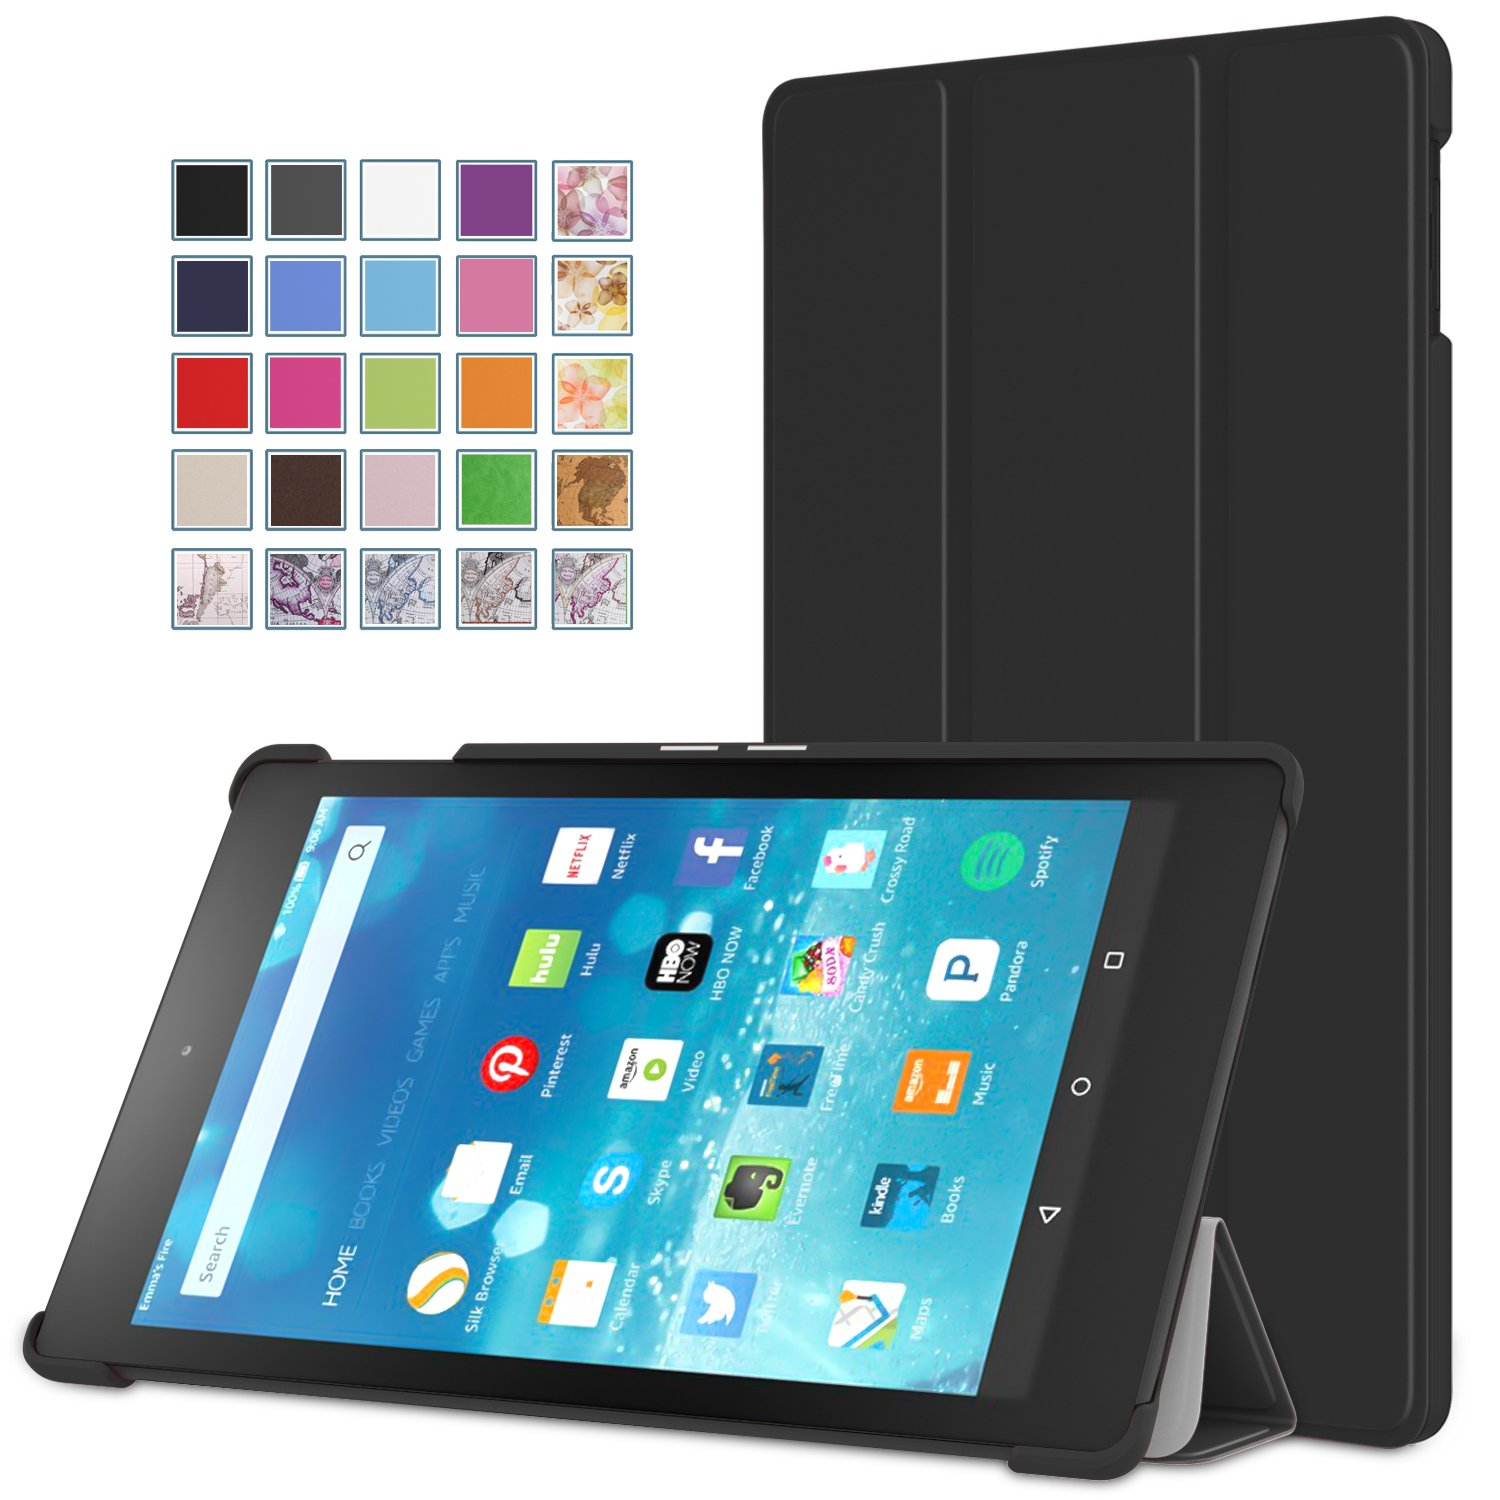 MoKo Fire HD 8 Case - Ultra Slim Lightweight Smart-shell Stand Cover with Auto Wake / Sleep for Amazon Kindle Fire HD 8 Inch Display Tablet (2015 Release Only), BLACK